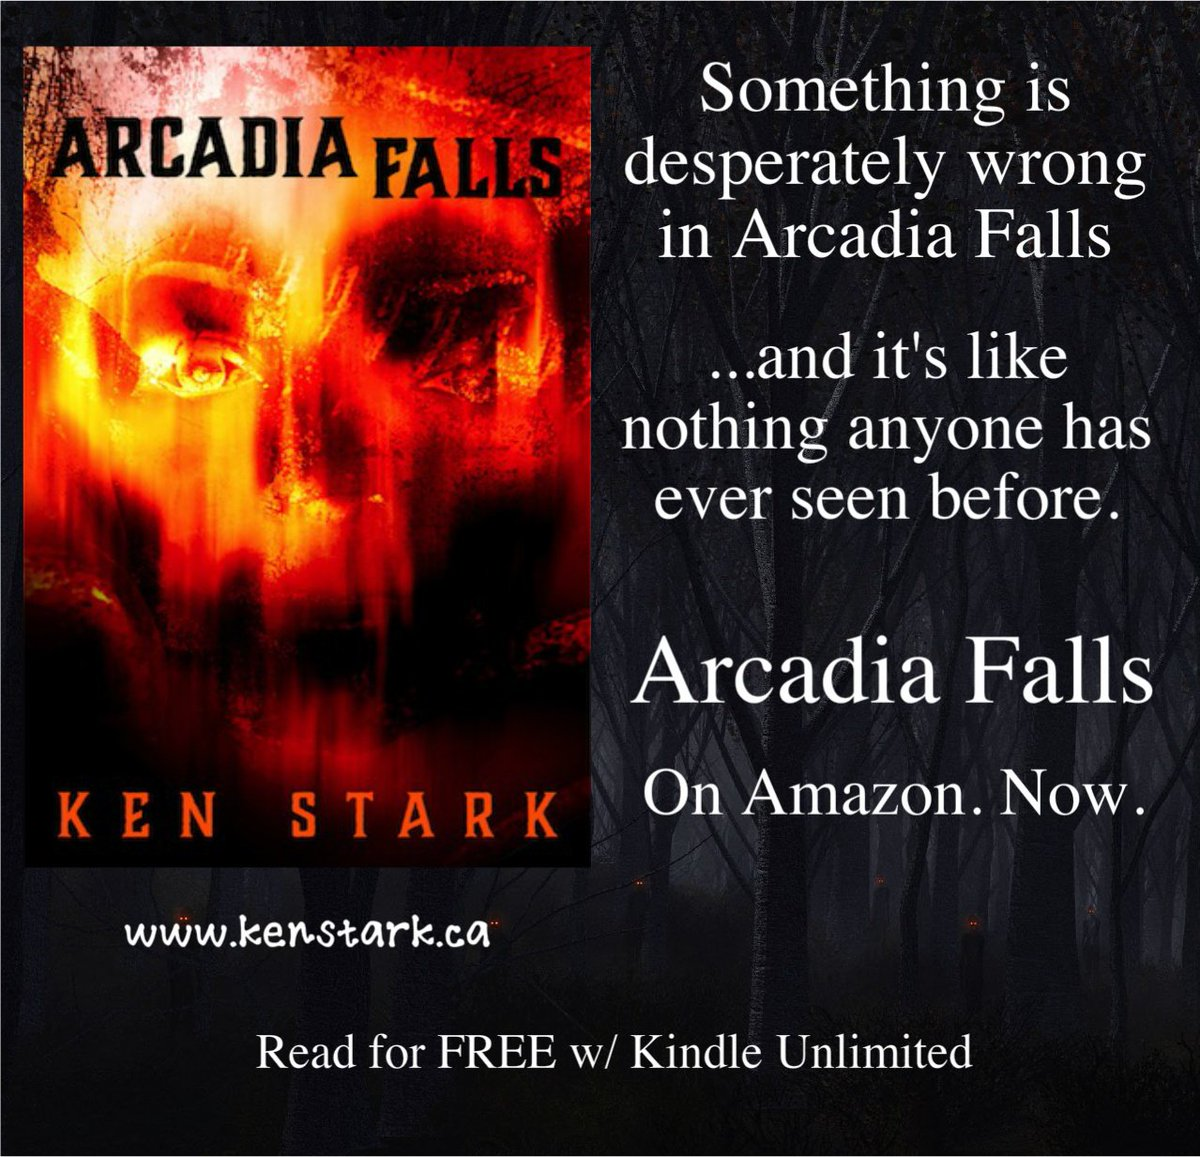 I wanted to run, but I couldn&#39;t. I had to see what was there, even if it was the last thing I ever saw...  #horror #mystery #thriller #YABookPromo #adventure #suspense #ArcadiaFalls #FREE w/ #KindleUnlimited   https://www. amazon.com/dp/B077VVQVL4/ ref=la_B01D911QC2 &nbsp; … <br>http://pic.twitter.com/bRD51lZVhA